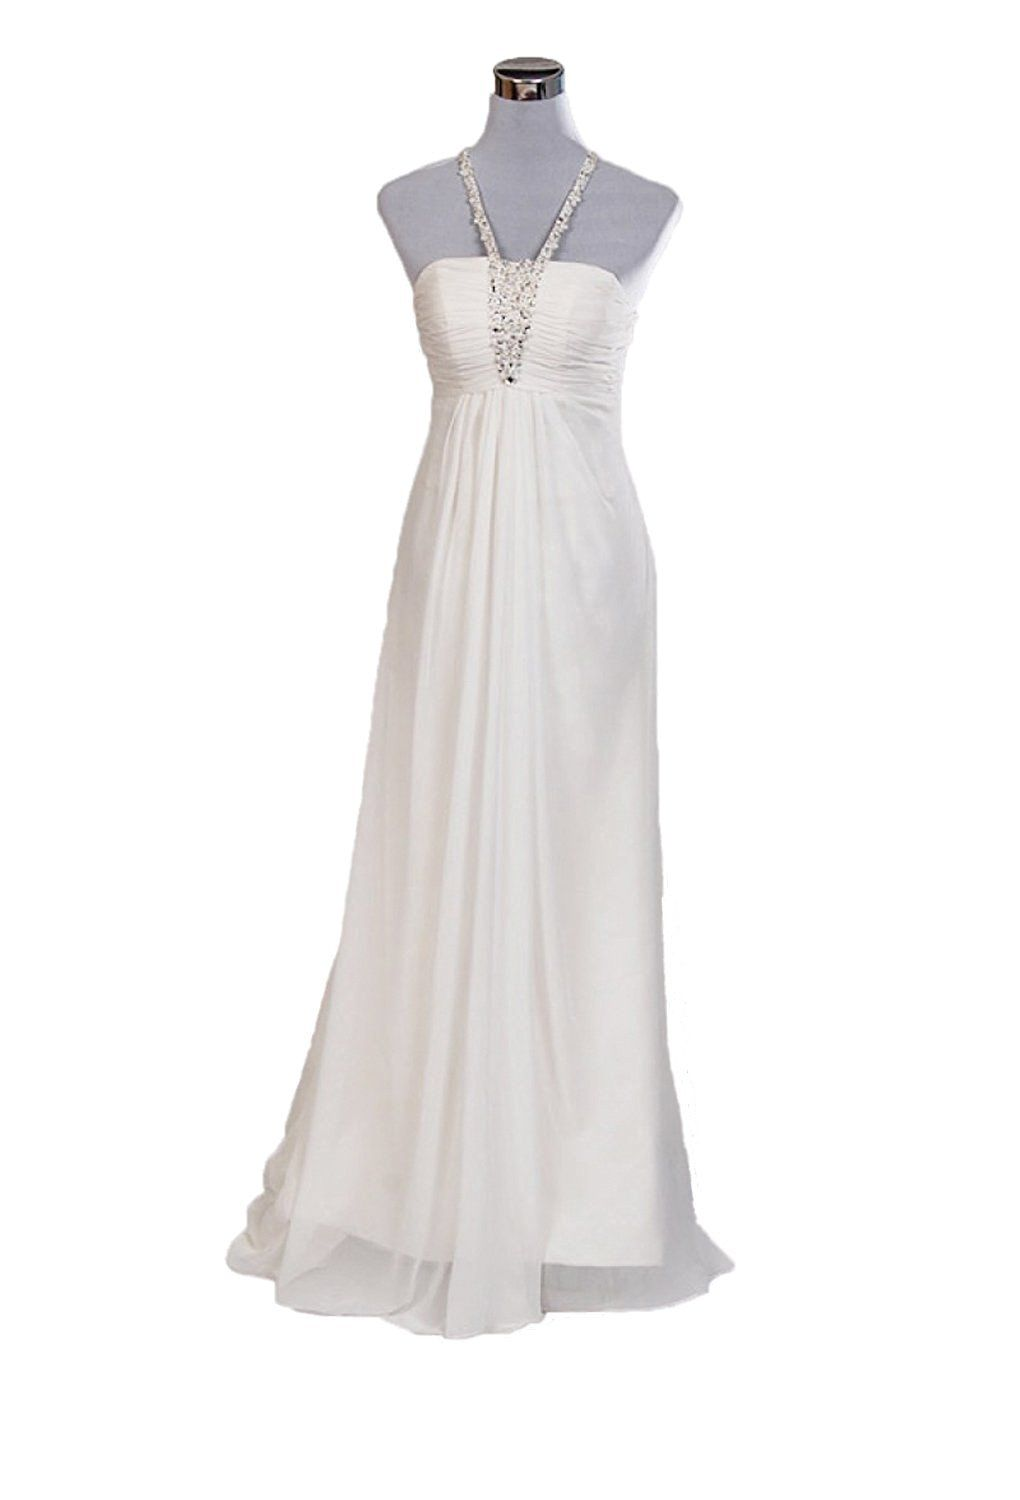 Chiffon wedding dresses  Angel Formal Dresses Womenus Halter Beading Chiffon Wedding Dress